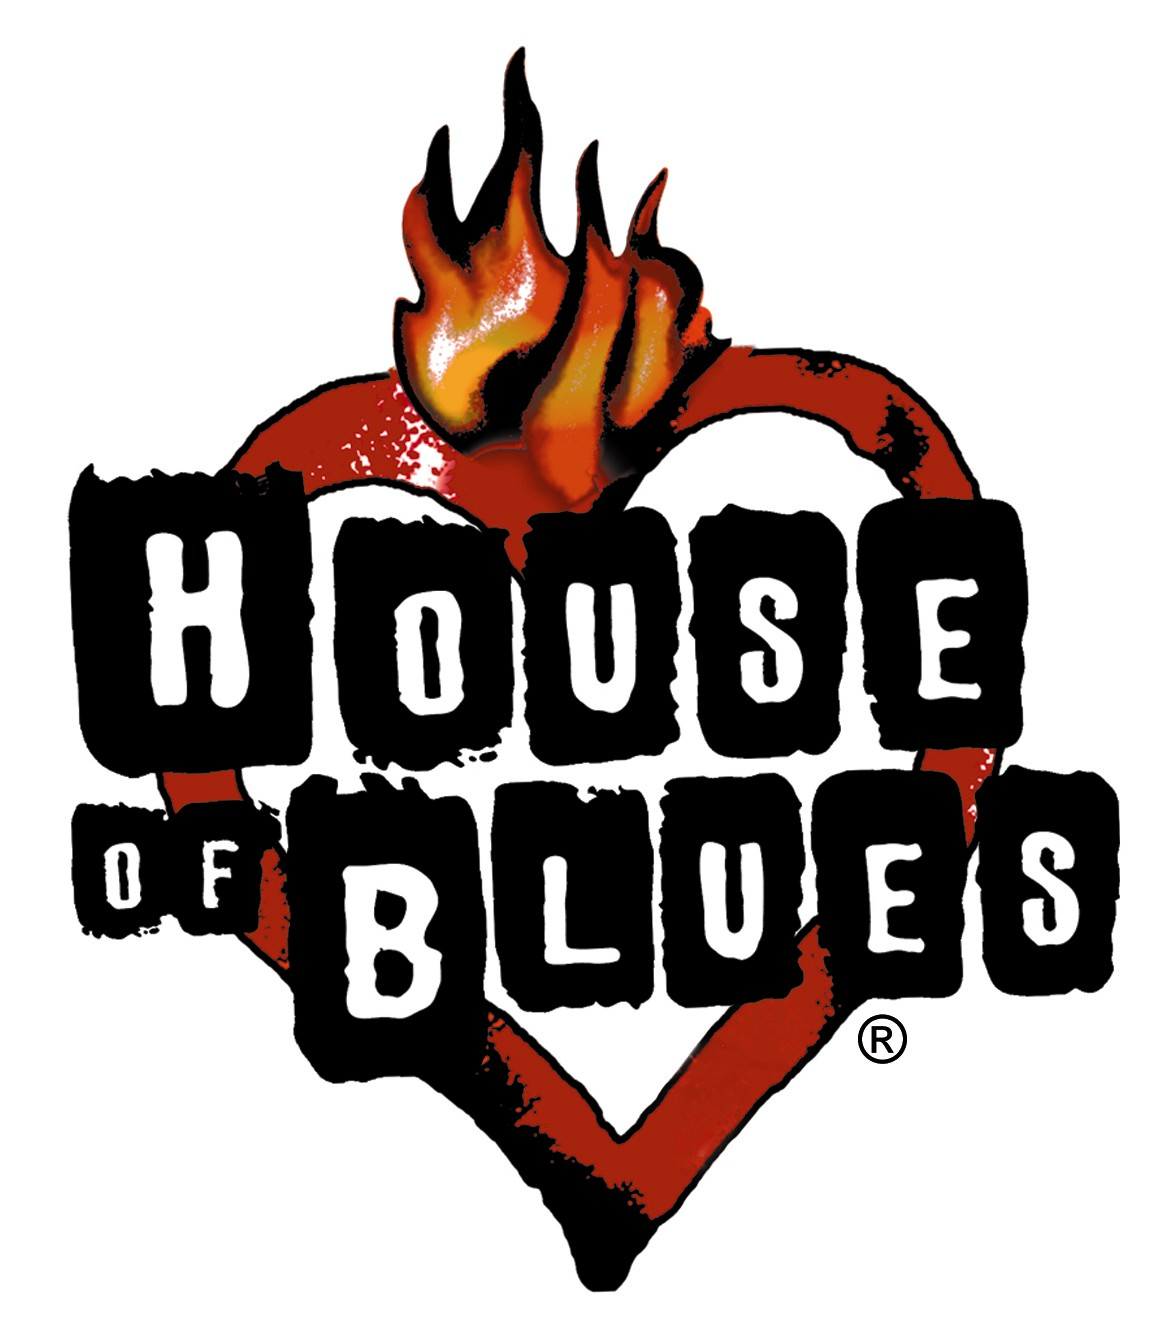 http://4.bp.blogspot.com/-Mja4v7bjp80/TbUSaUjzLQI/AAAAAAAAAMM/HBaU88Muq8Y/s1600/House_of_blues_logo_stacked.jpeg